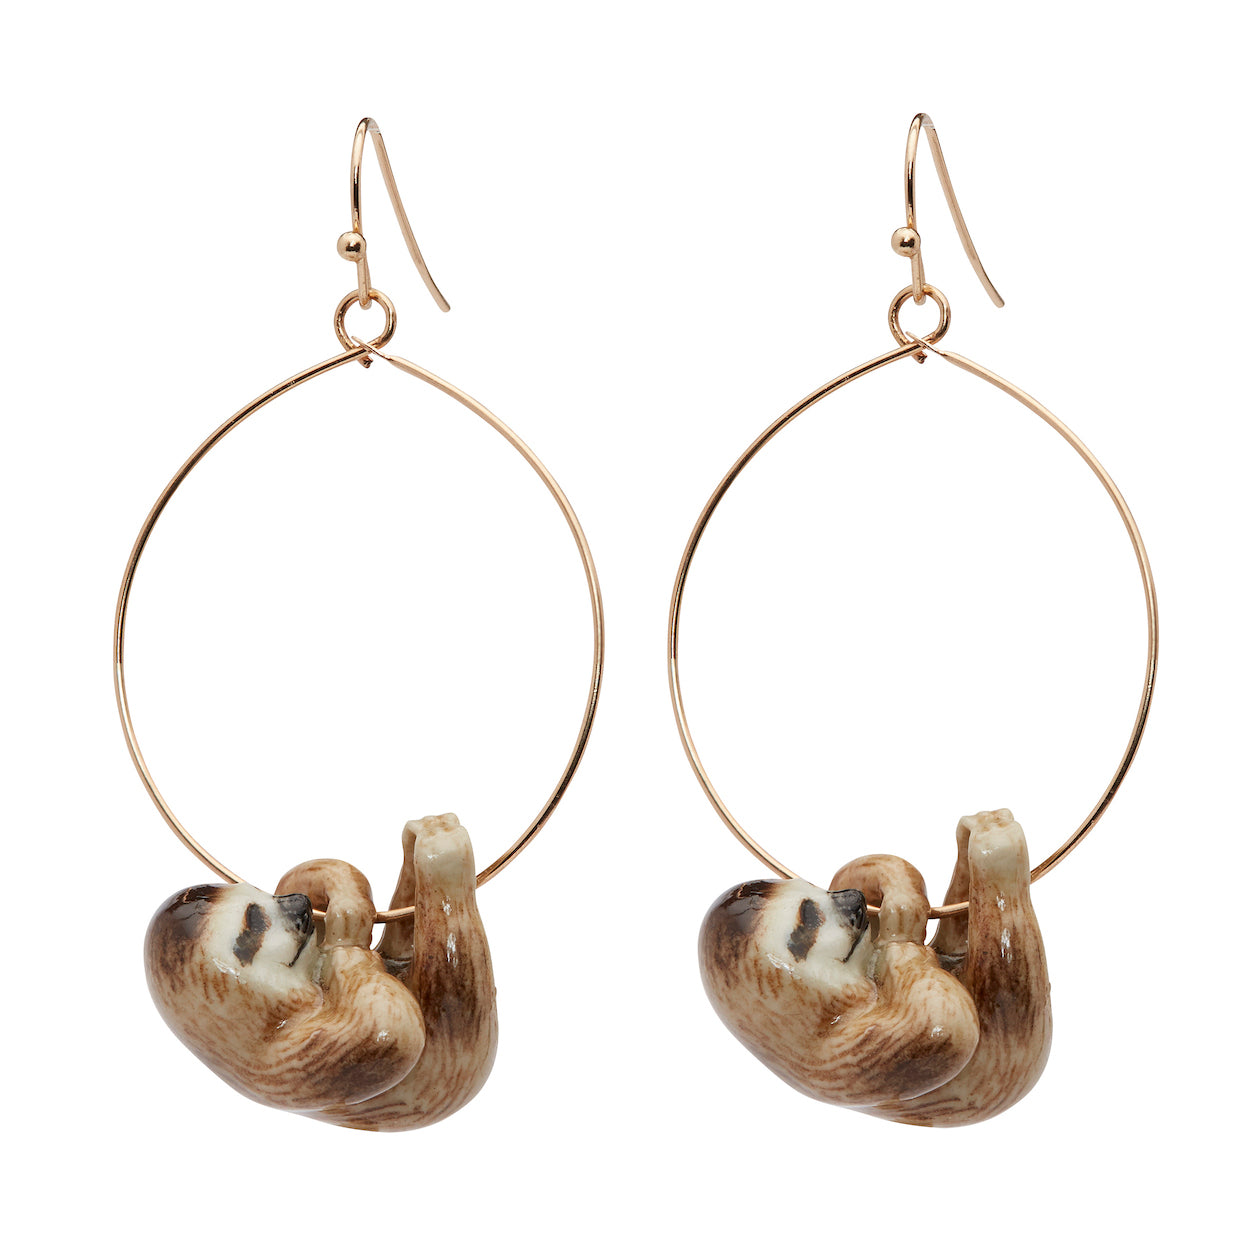 Hanging Sloth Hoop Drop Earrings